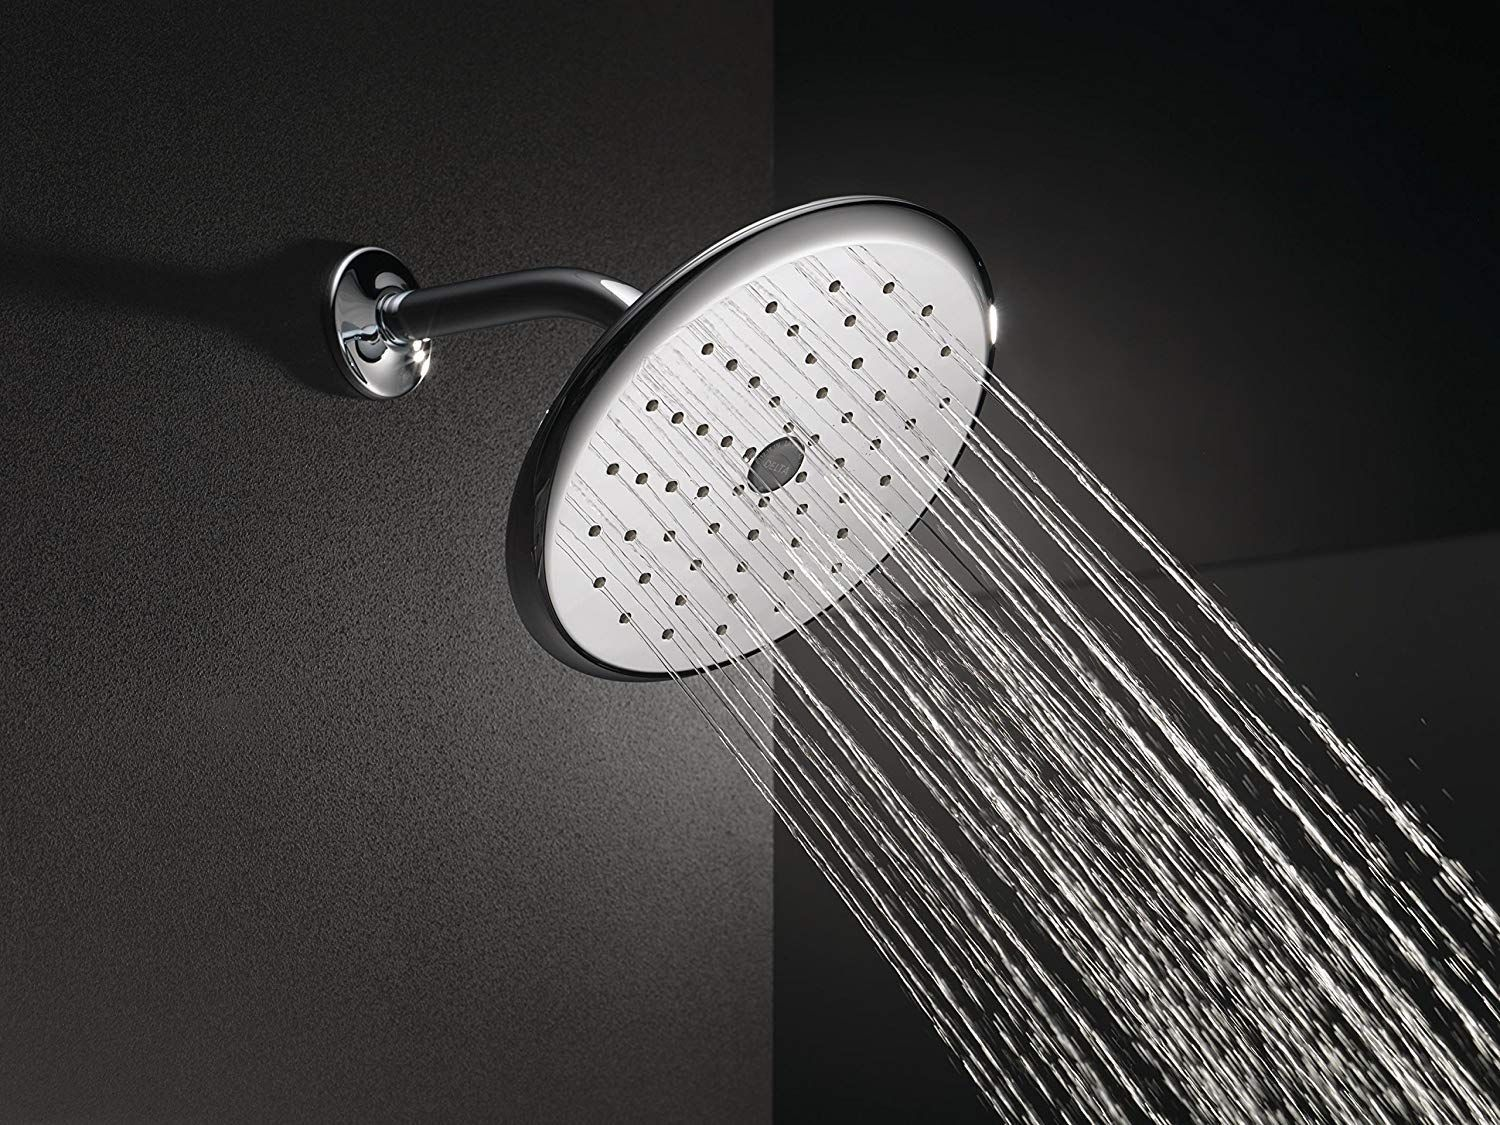 Best Rain Showerhead Reviews In 2020 With Images Rain Shower